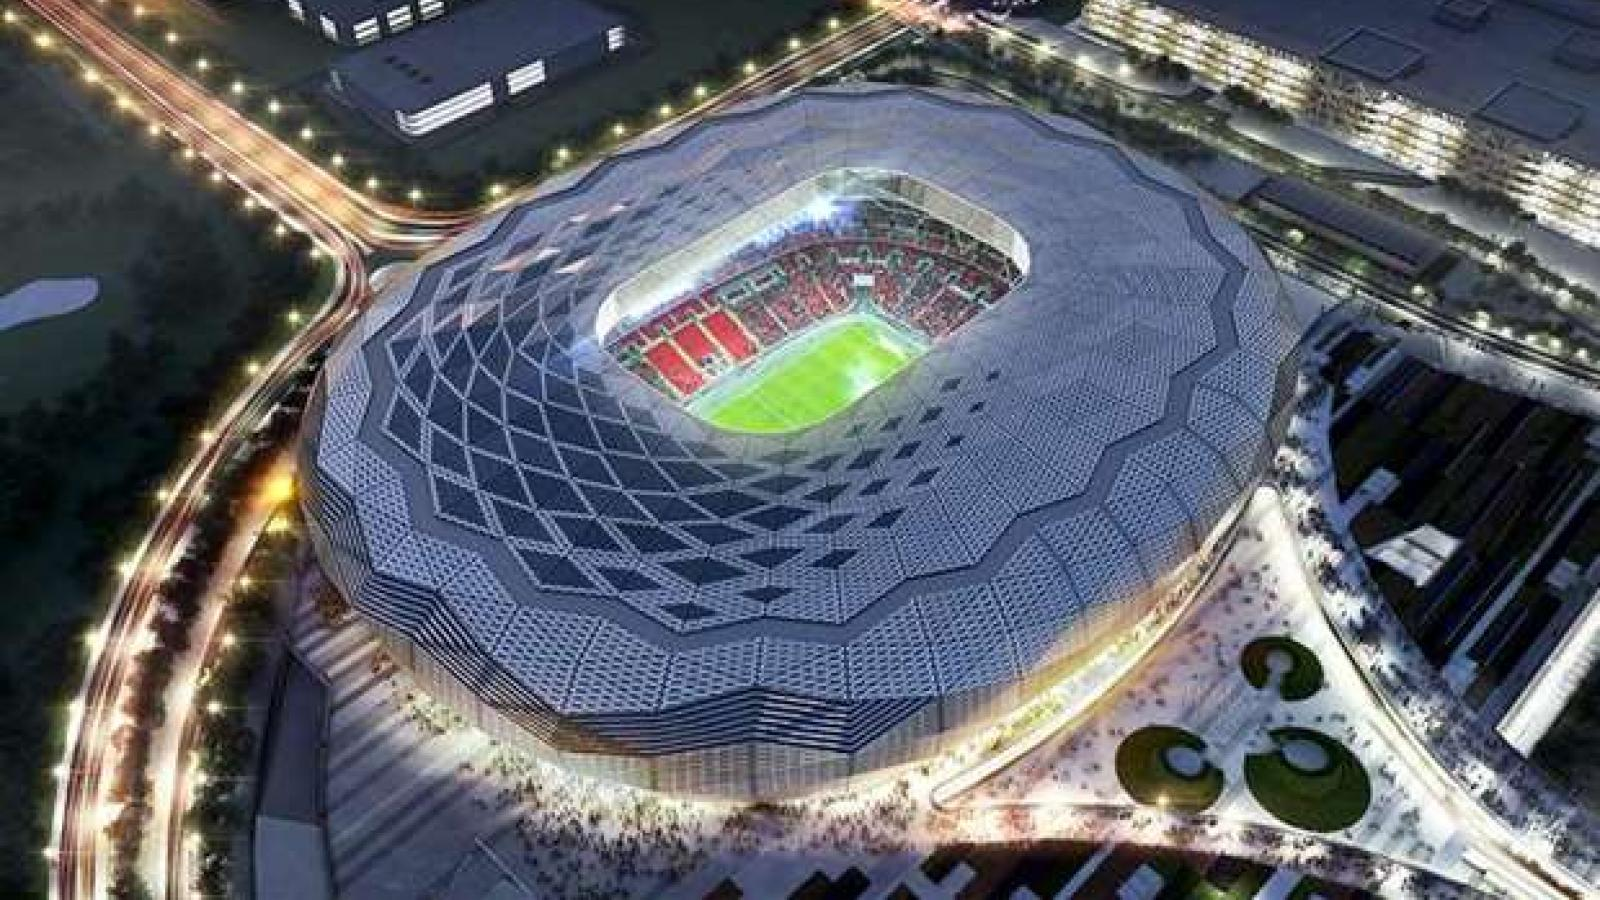 Qatar completed Education City Stadium for 2022 FIFA World Cup